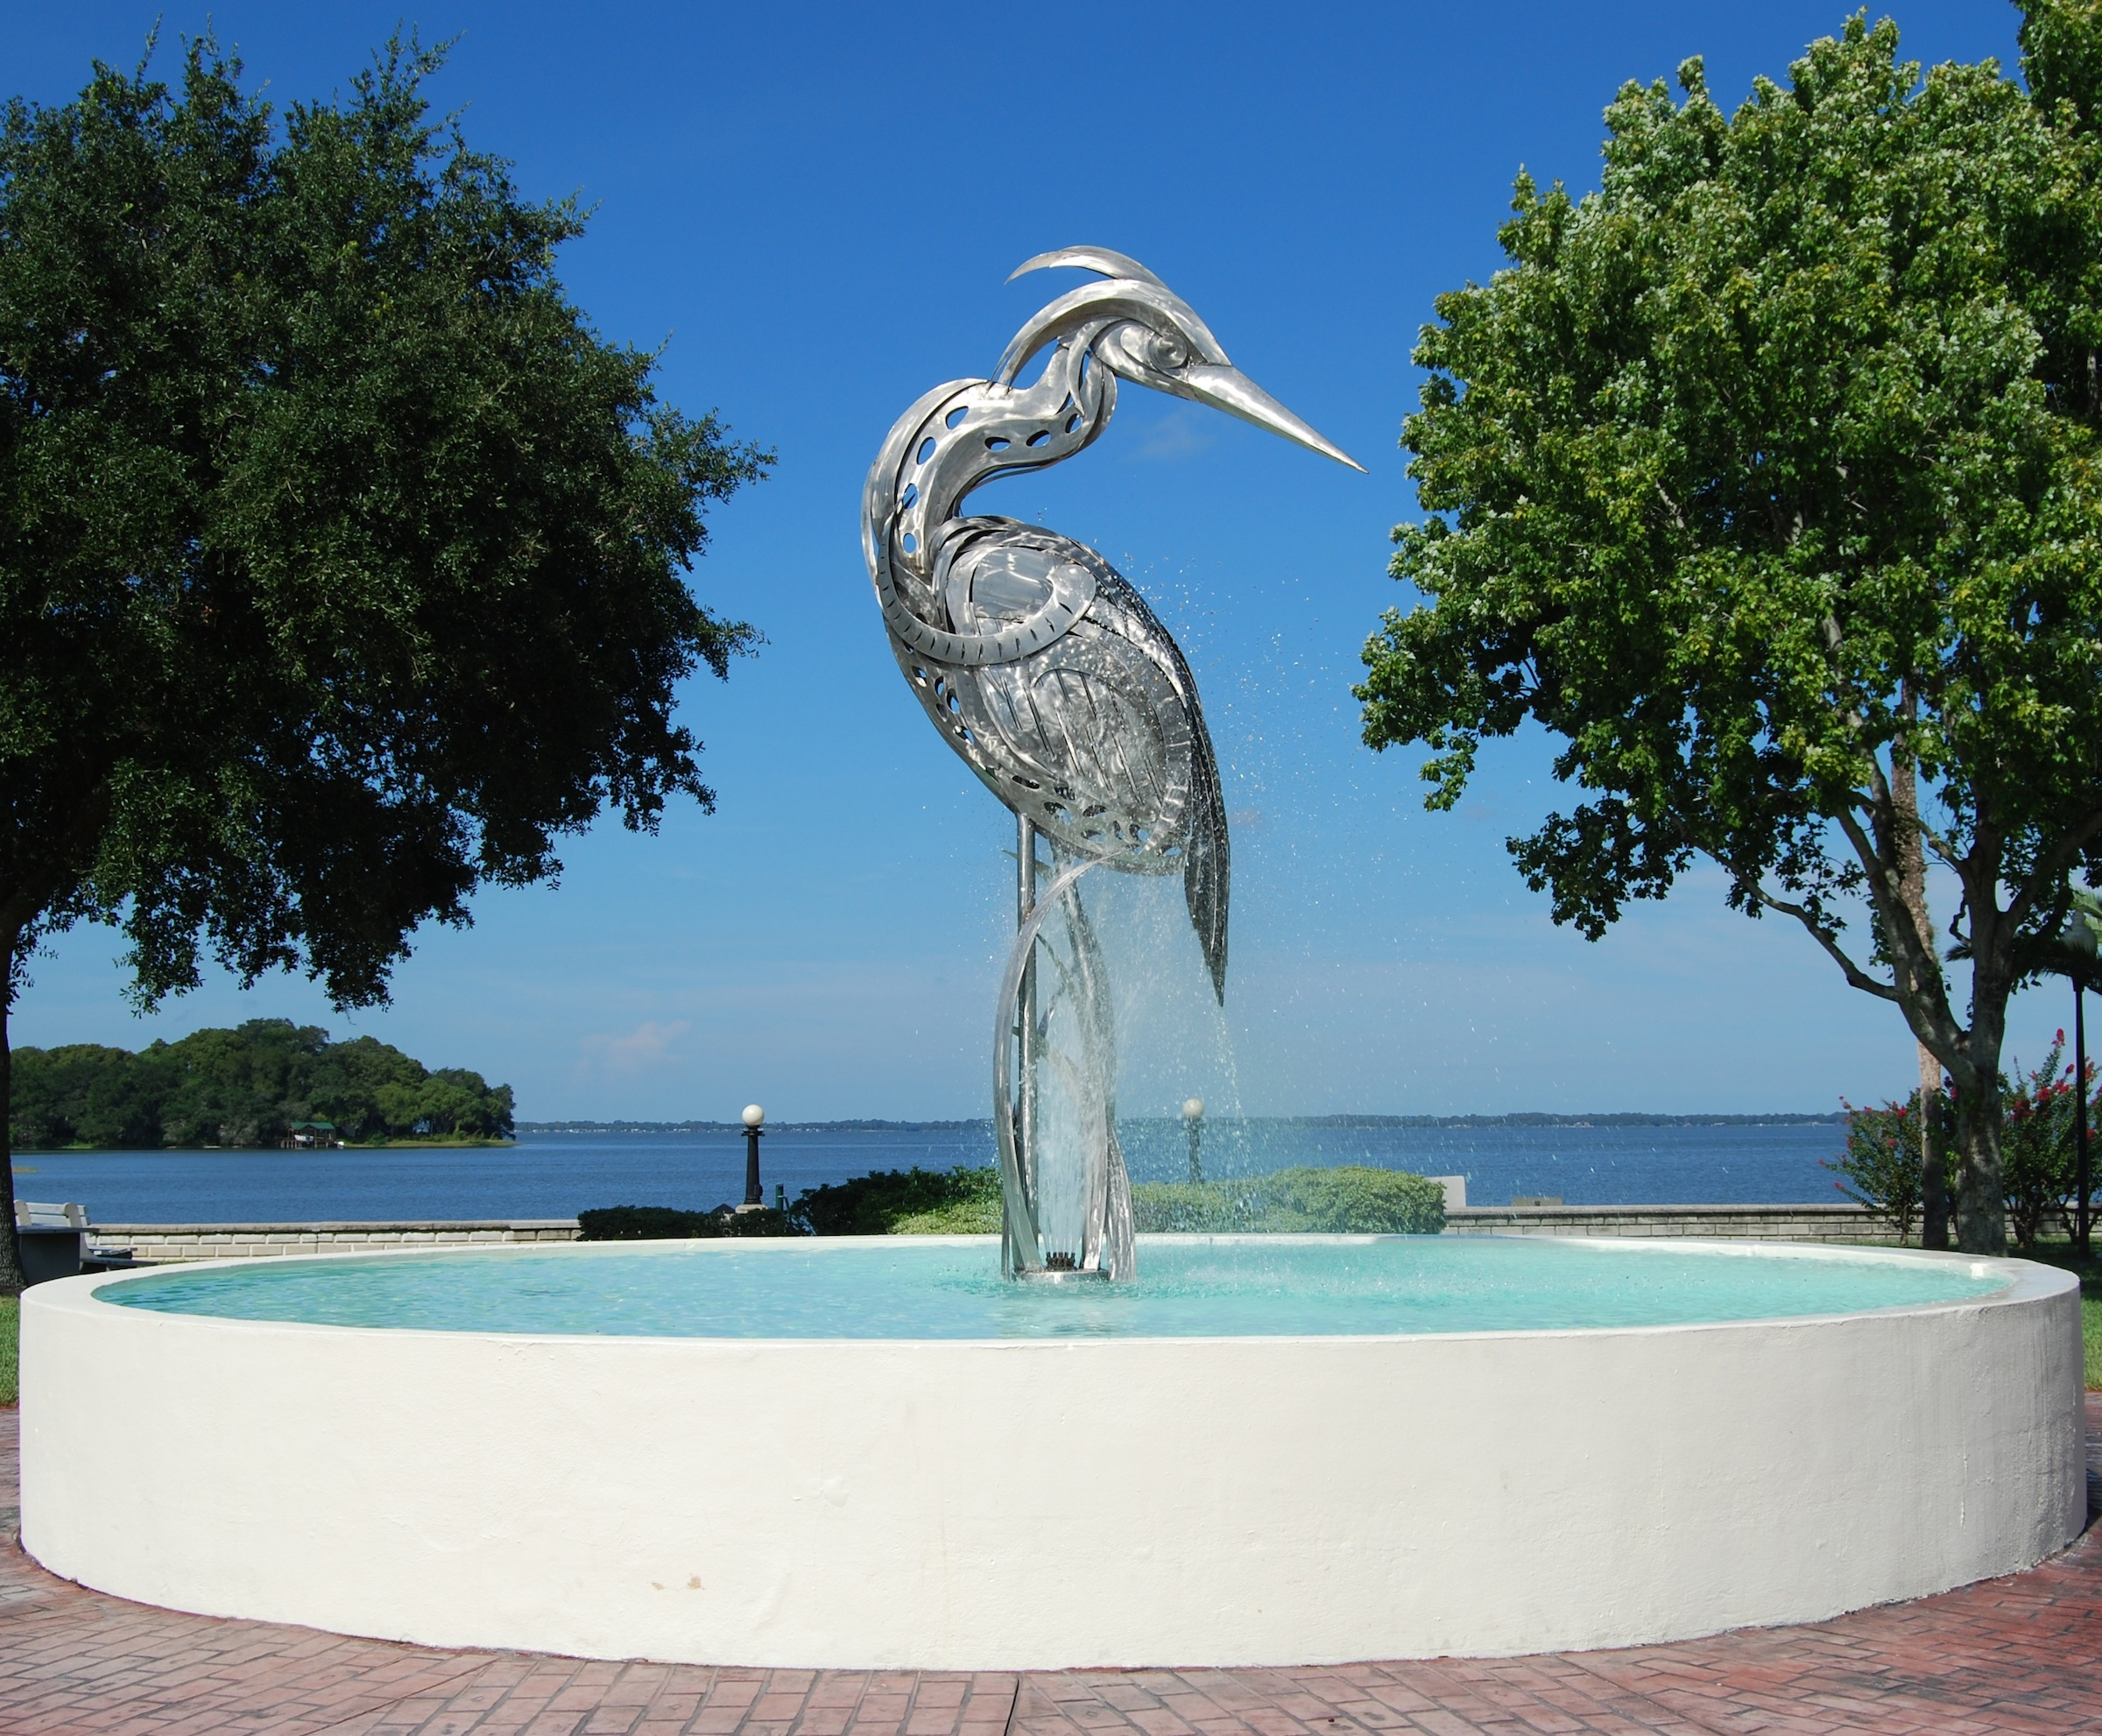 public-art-bird-sculpture-doug-hays